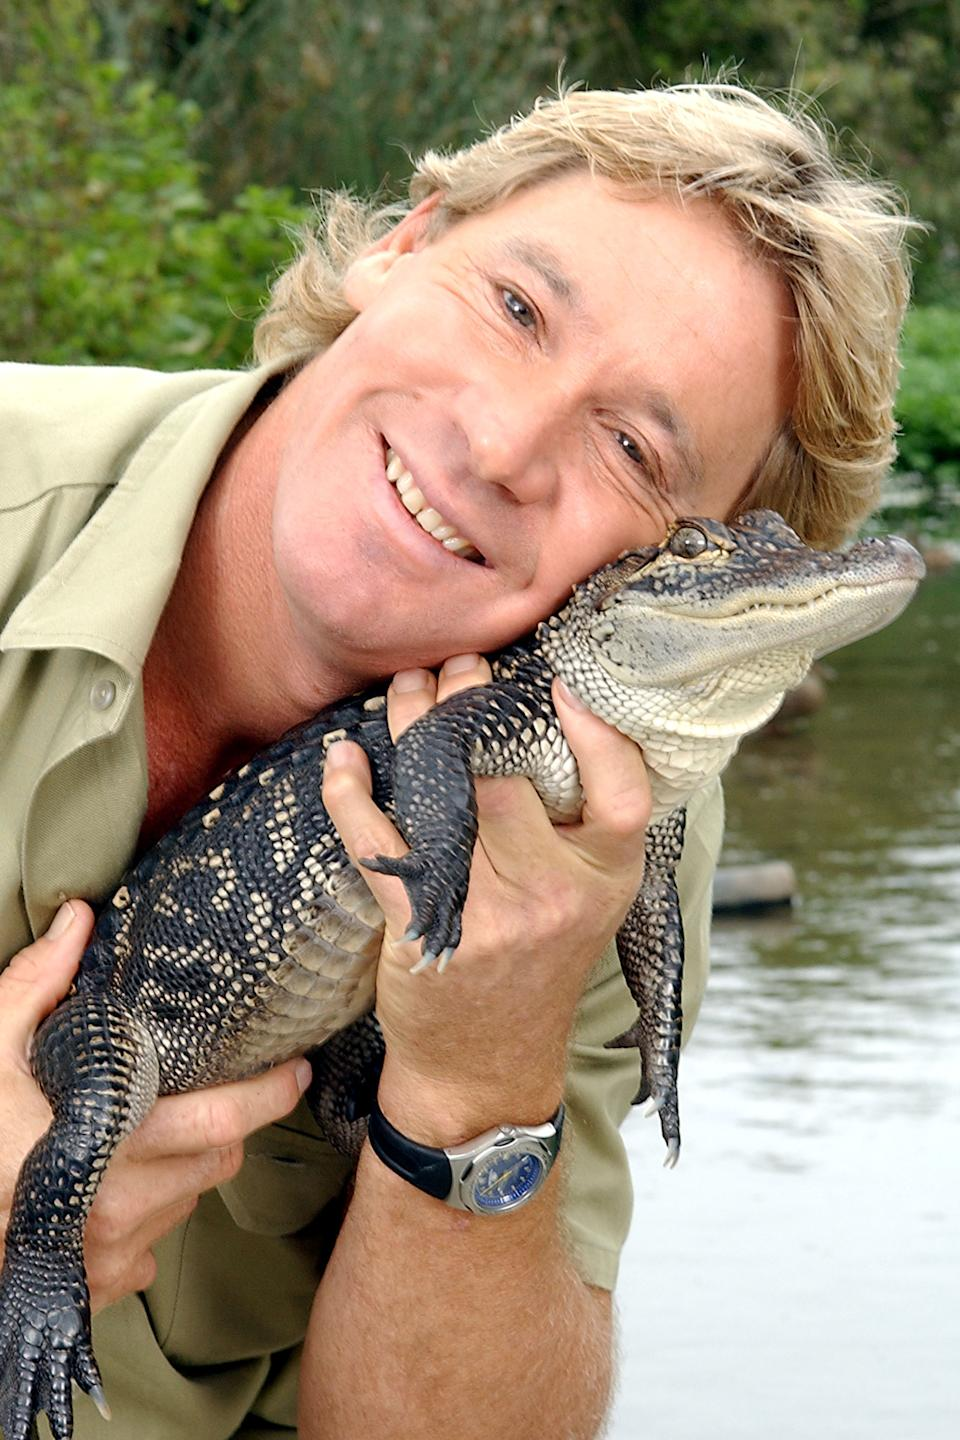 An old snap of Steve Irwin confirms the resemblance. Photo: Getty Images